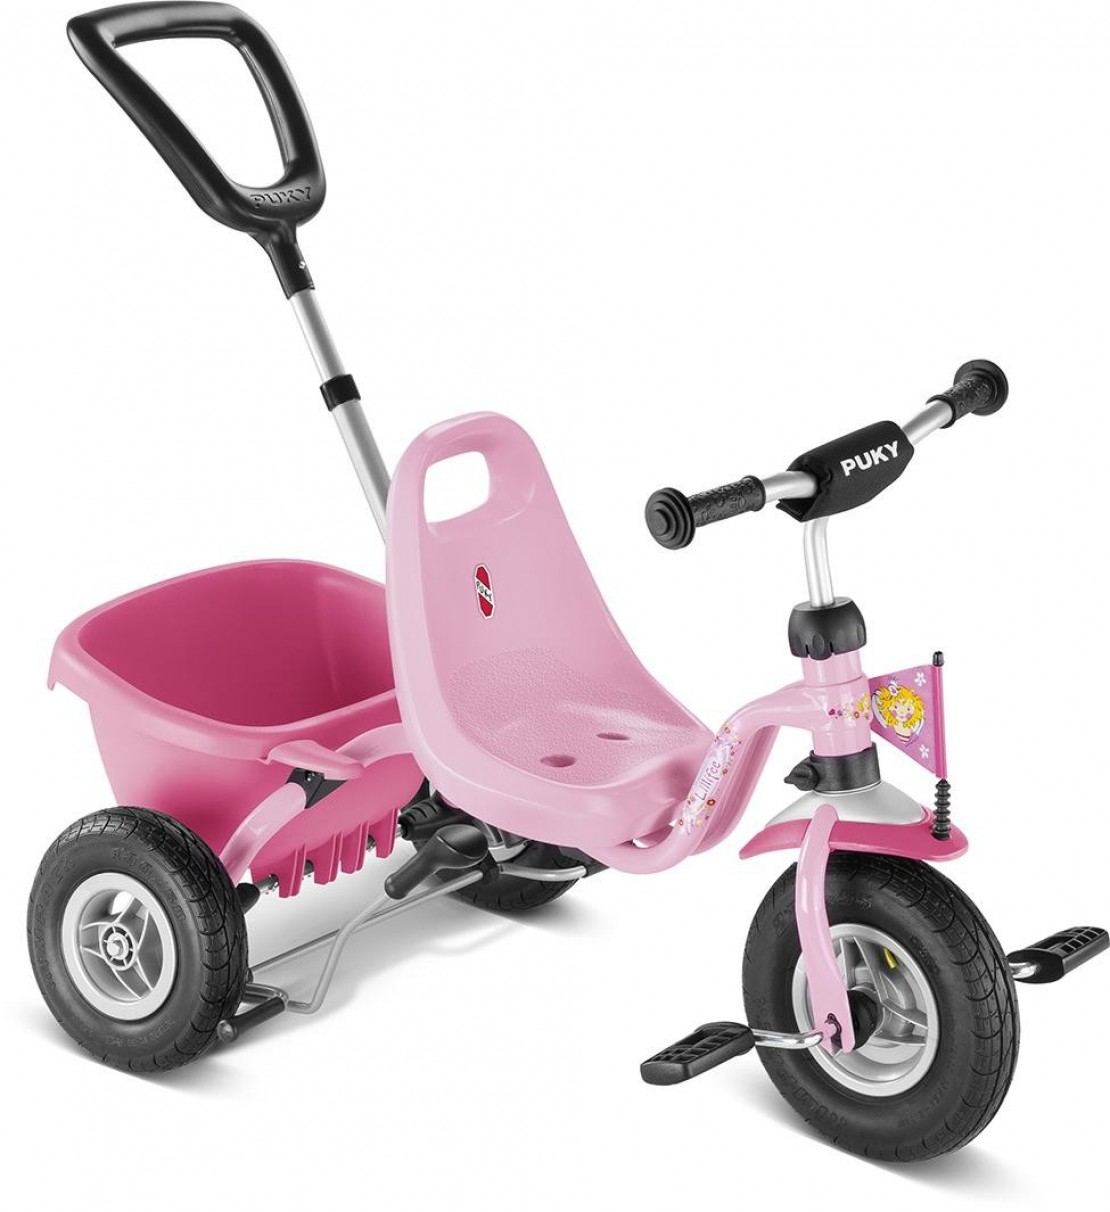 Puky Cat 1L - 2019 Kids Bike